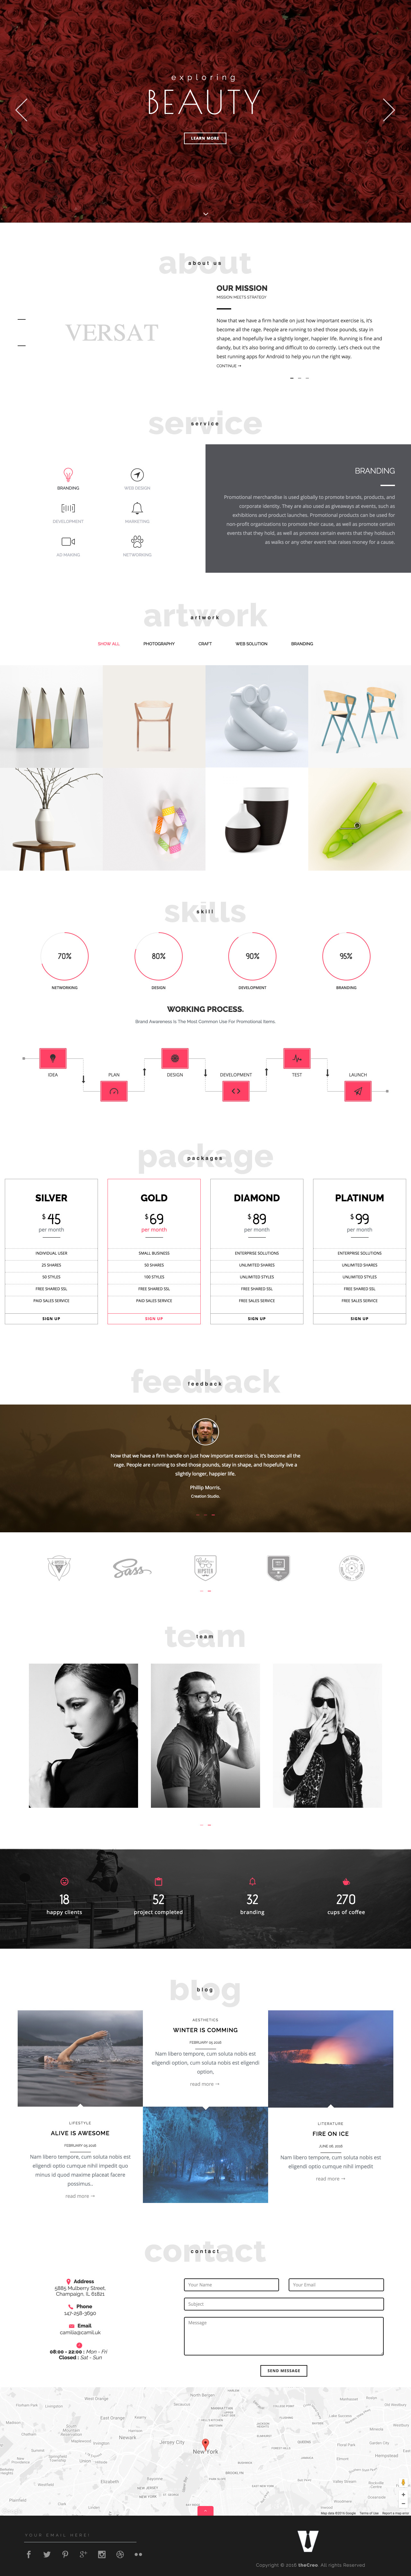 versa is a long scrolling one page html template with 12 intro